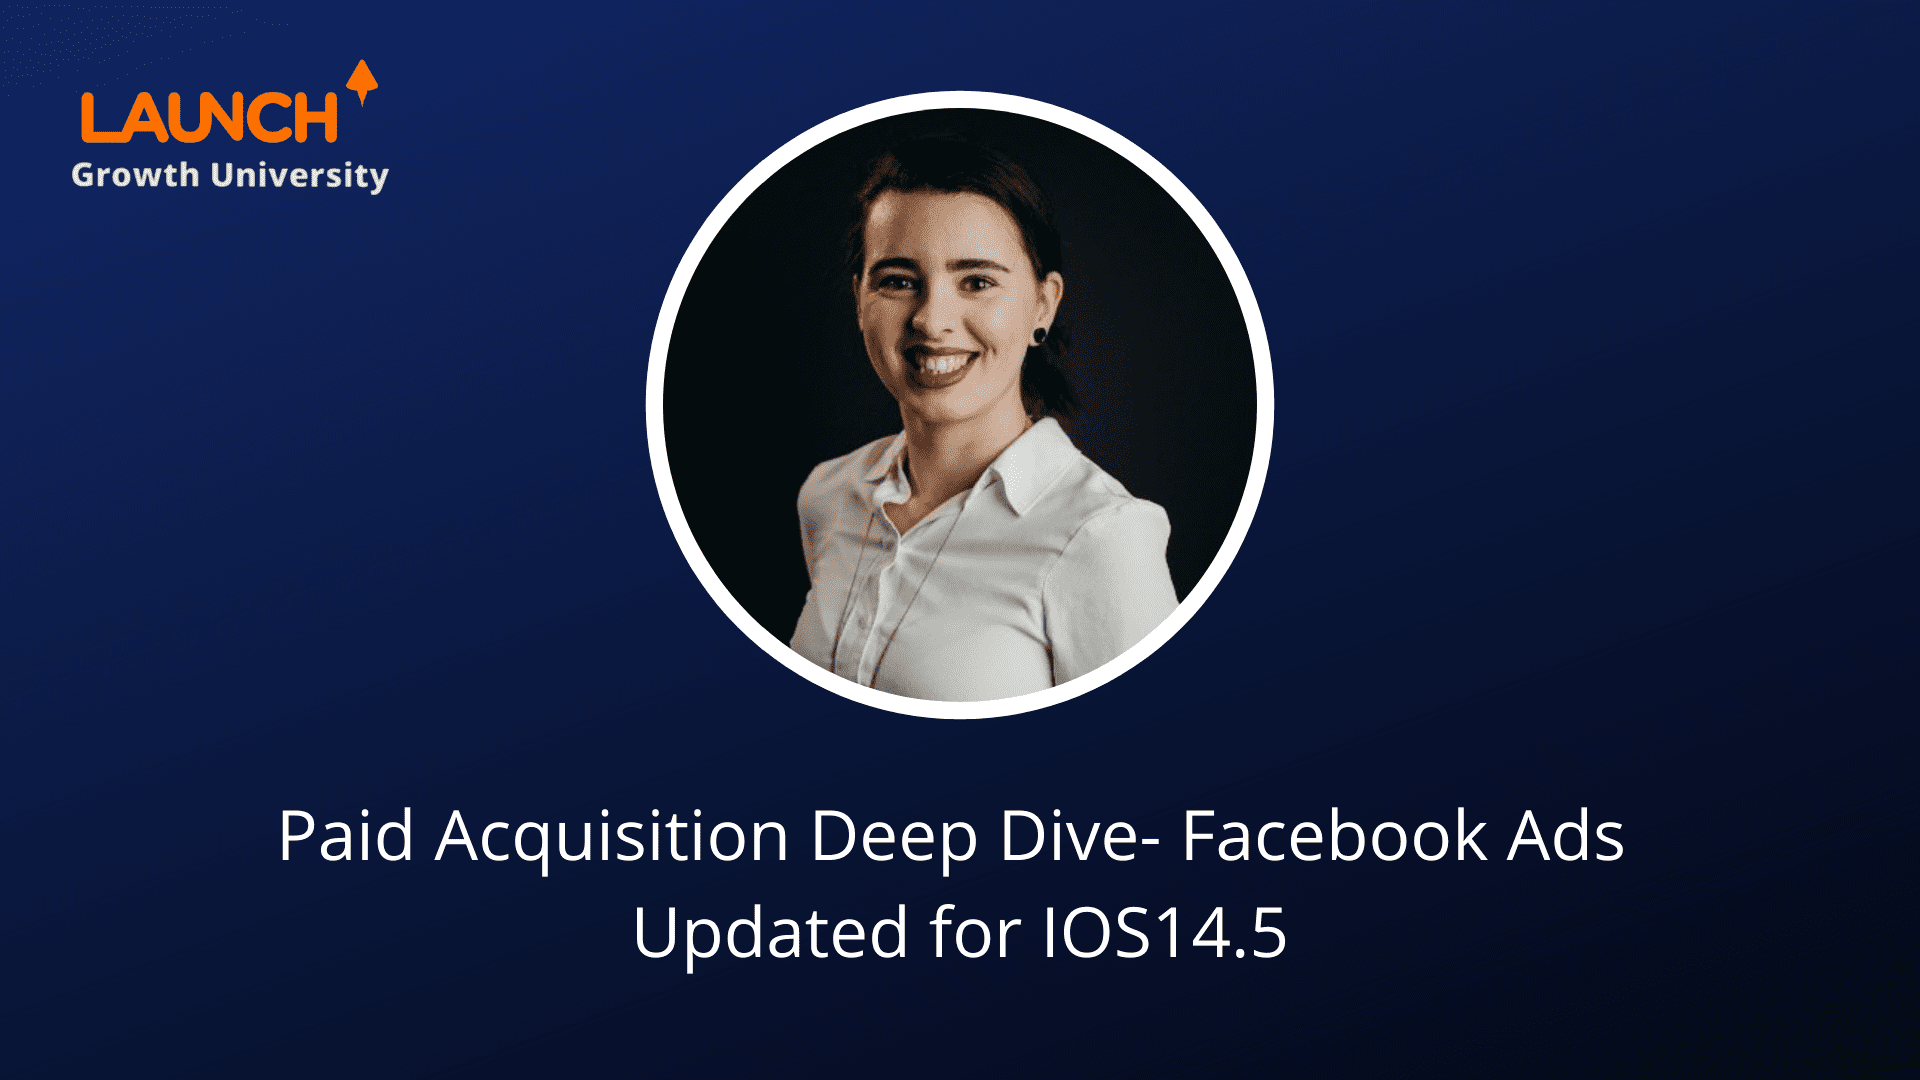 Paid Acquisition Deep Dive into Facebook Ads – Updated for IOS 14.5